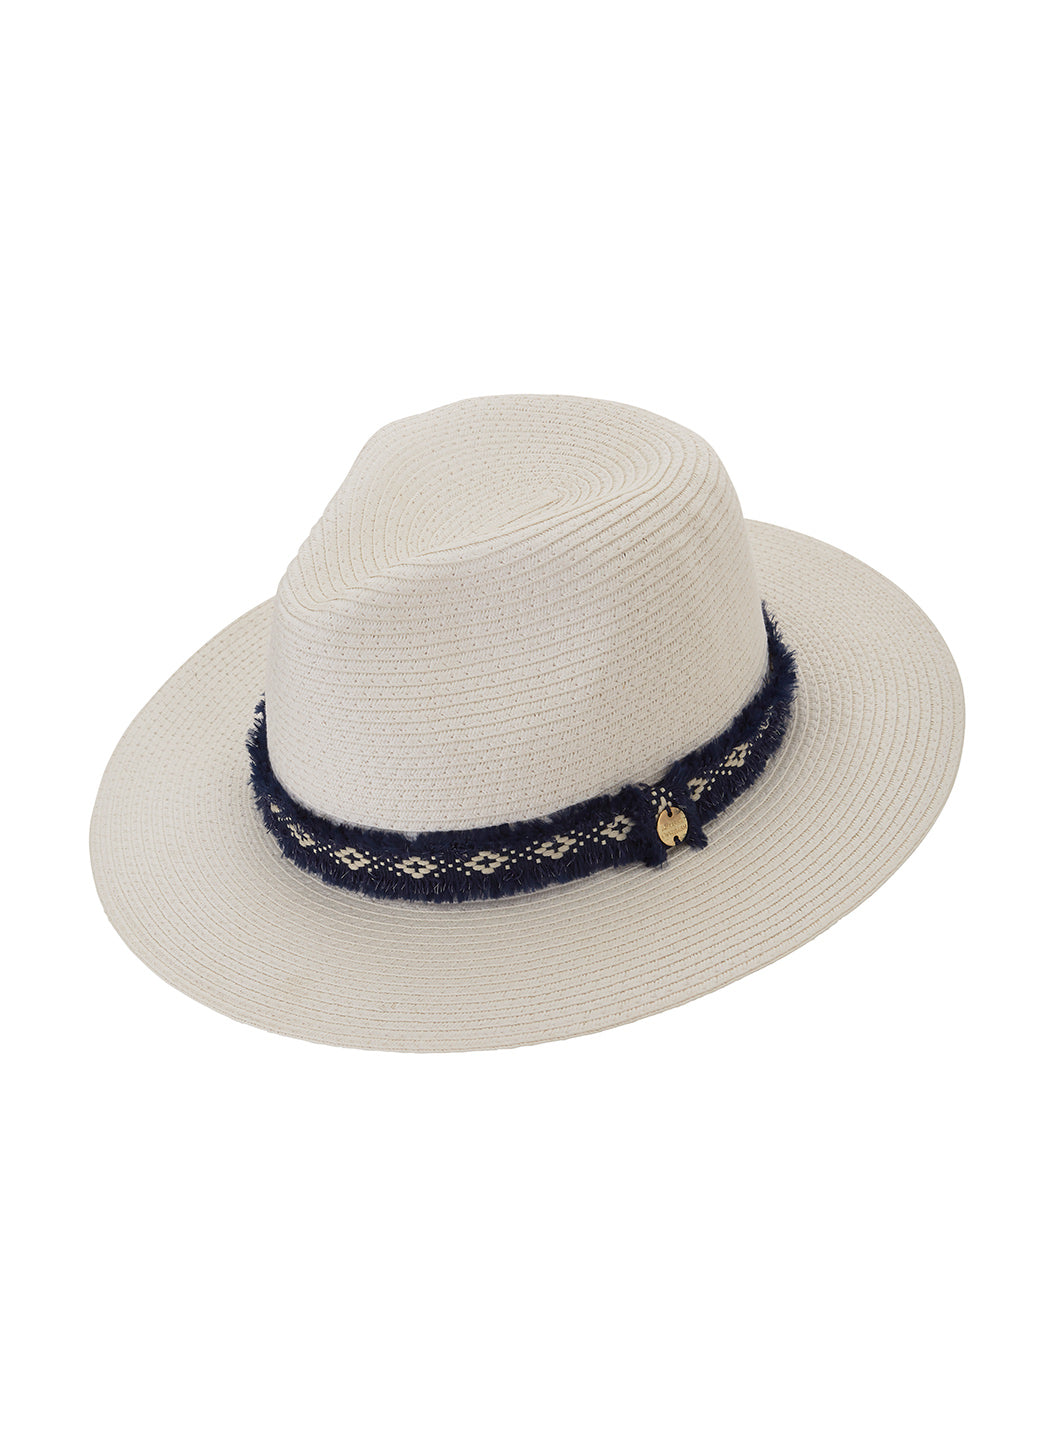 Fedora Hat White Navy - Melissa Odabash Accessories